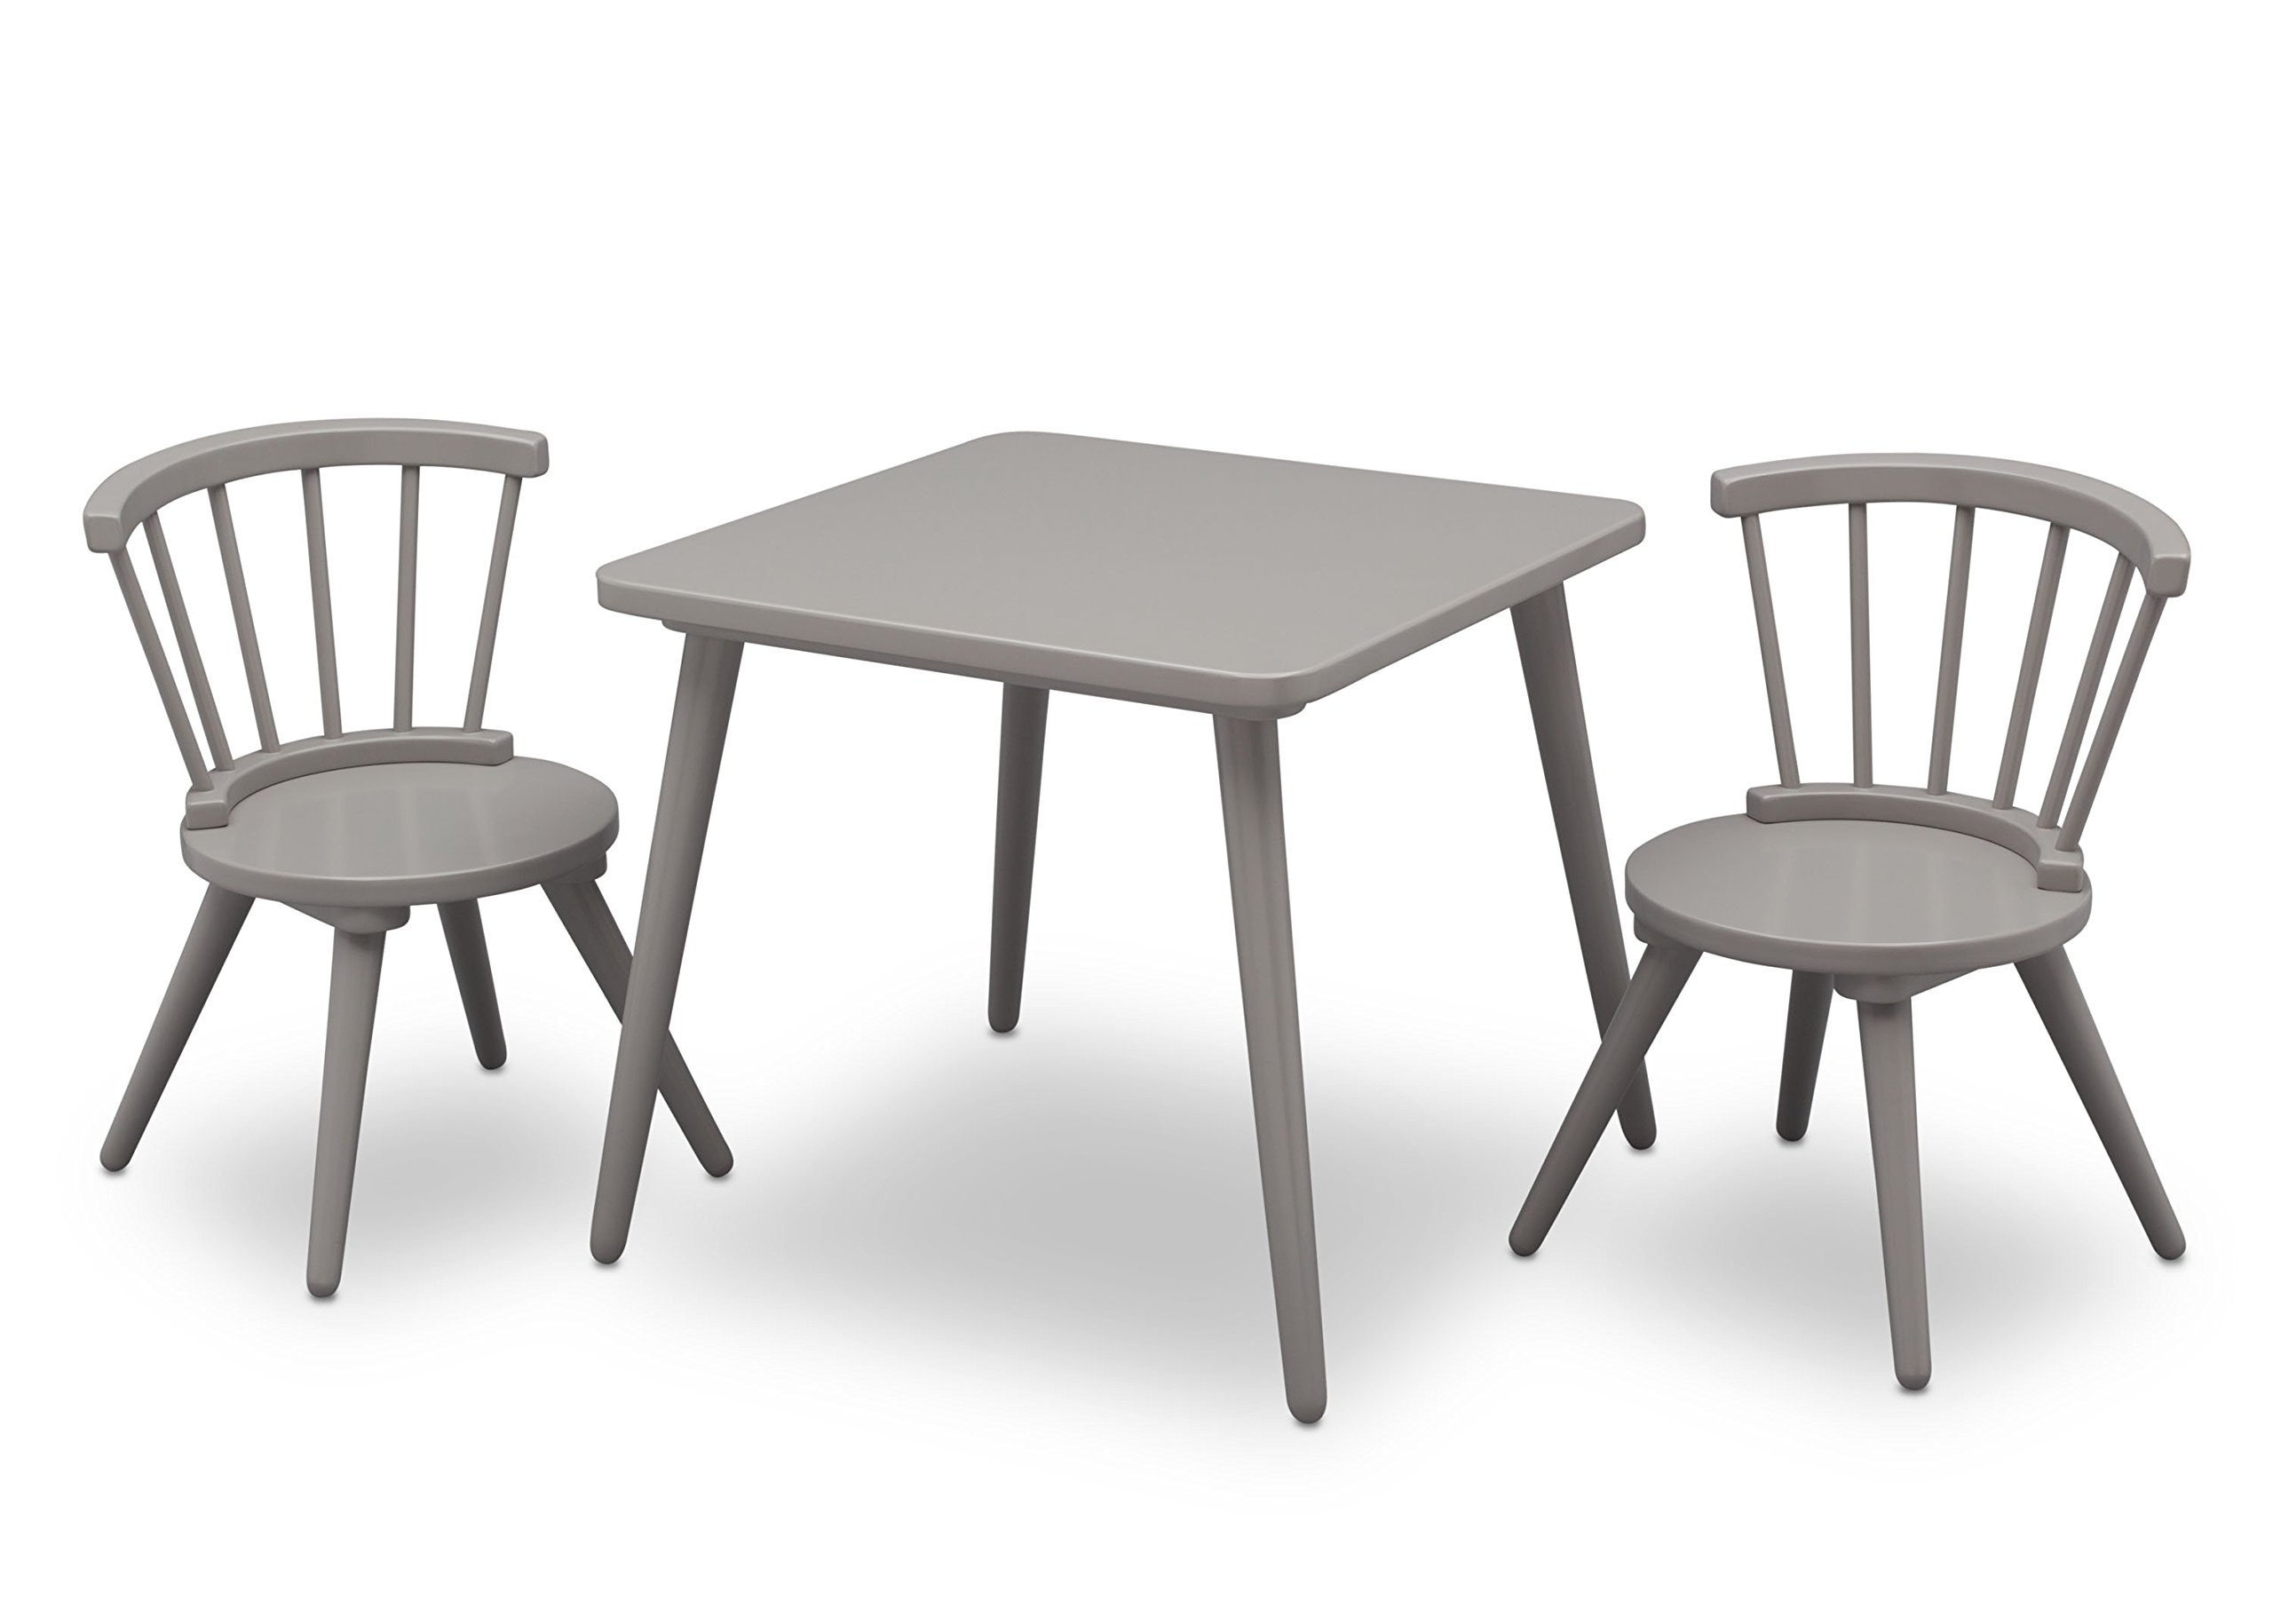 Delta Children Windsor Kids Wood Chair Set and Table (2 Chairs Included), Grey by Delta Children